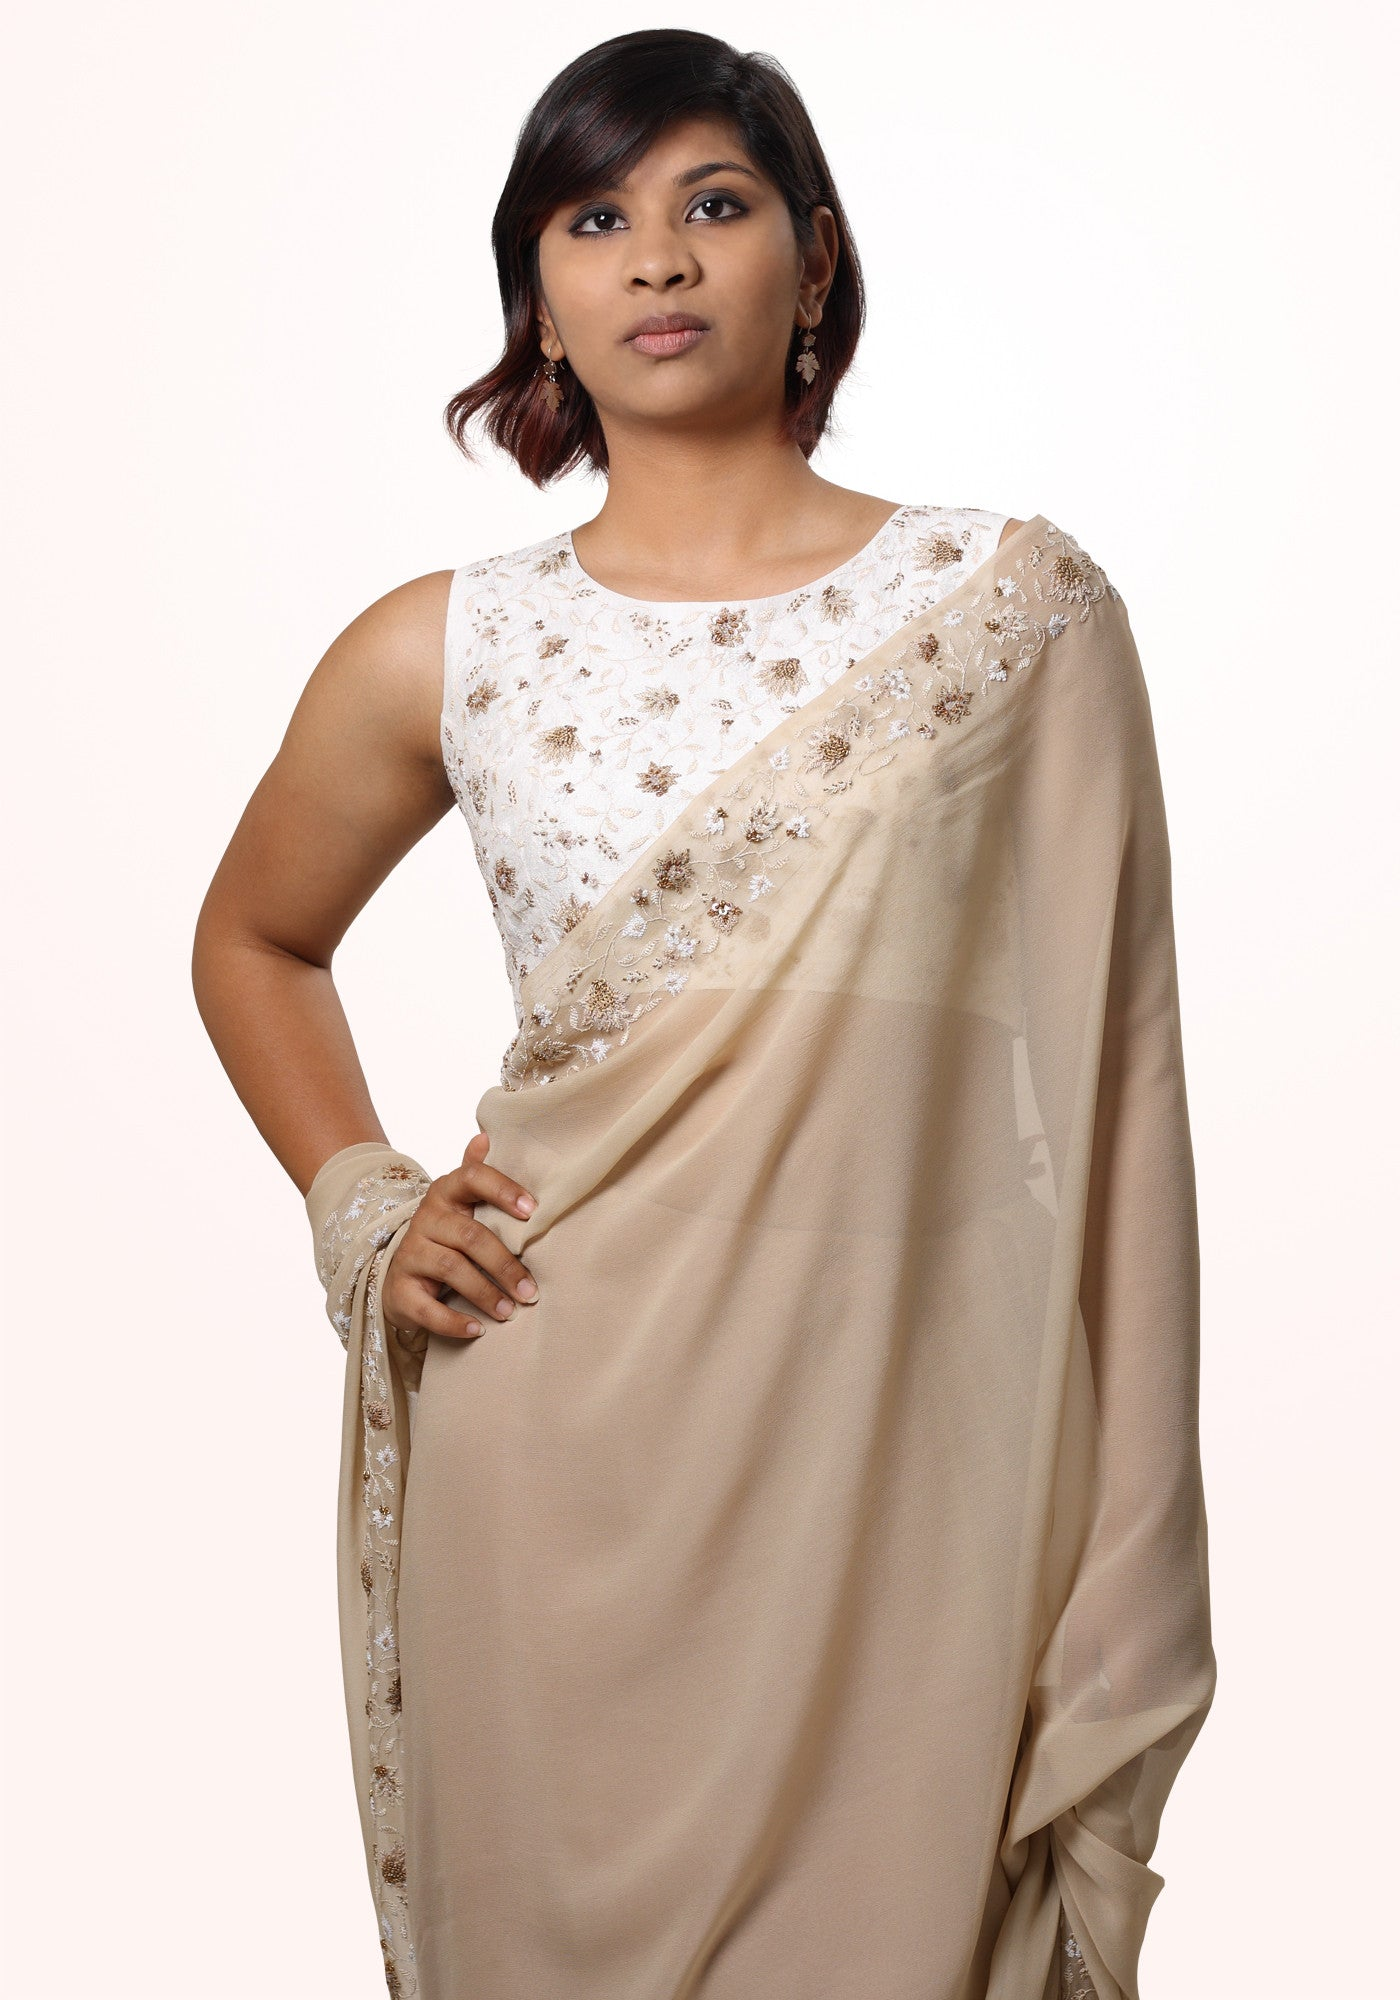 Padmini Hand Crafted Blouse in Ivory Silk - MINC ecofashion